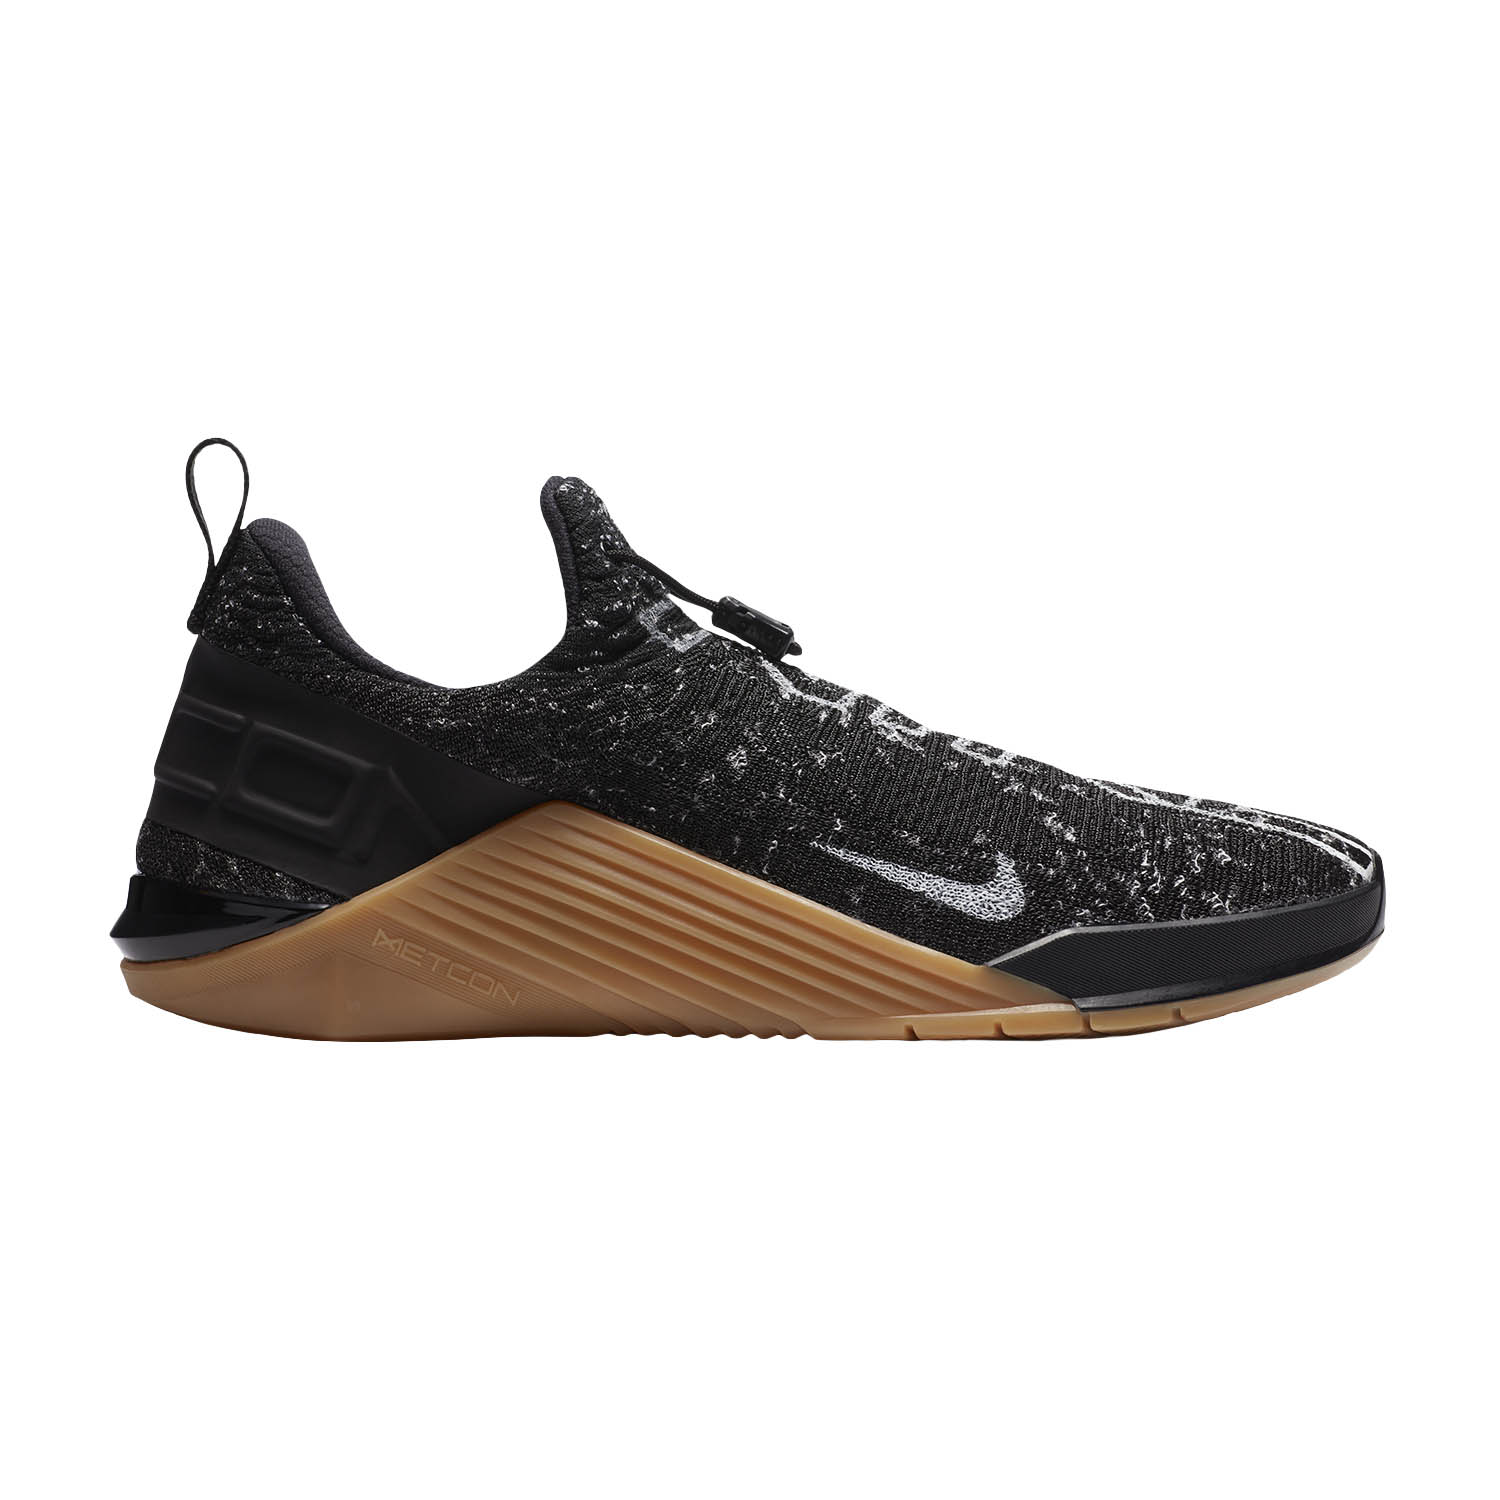 Nike React Metcon - Black/White/Gum Med Brown